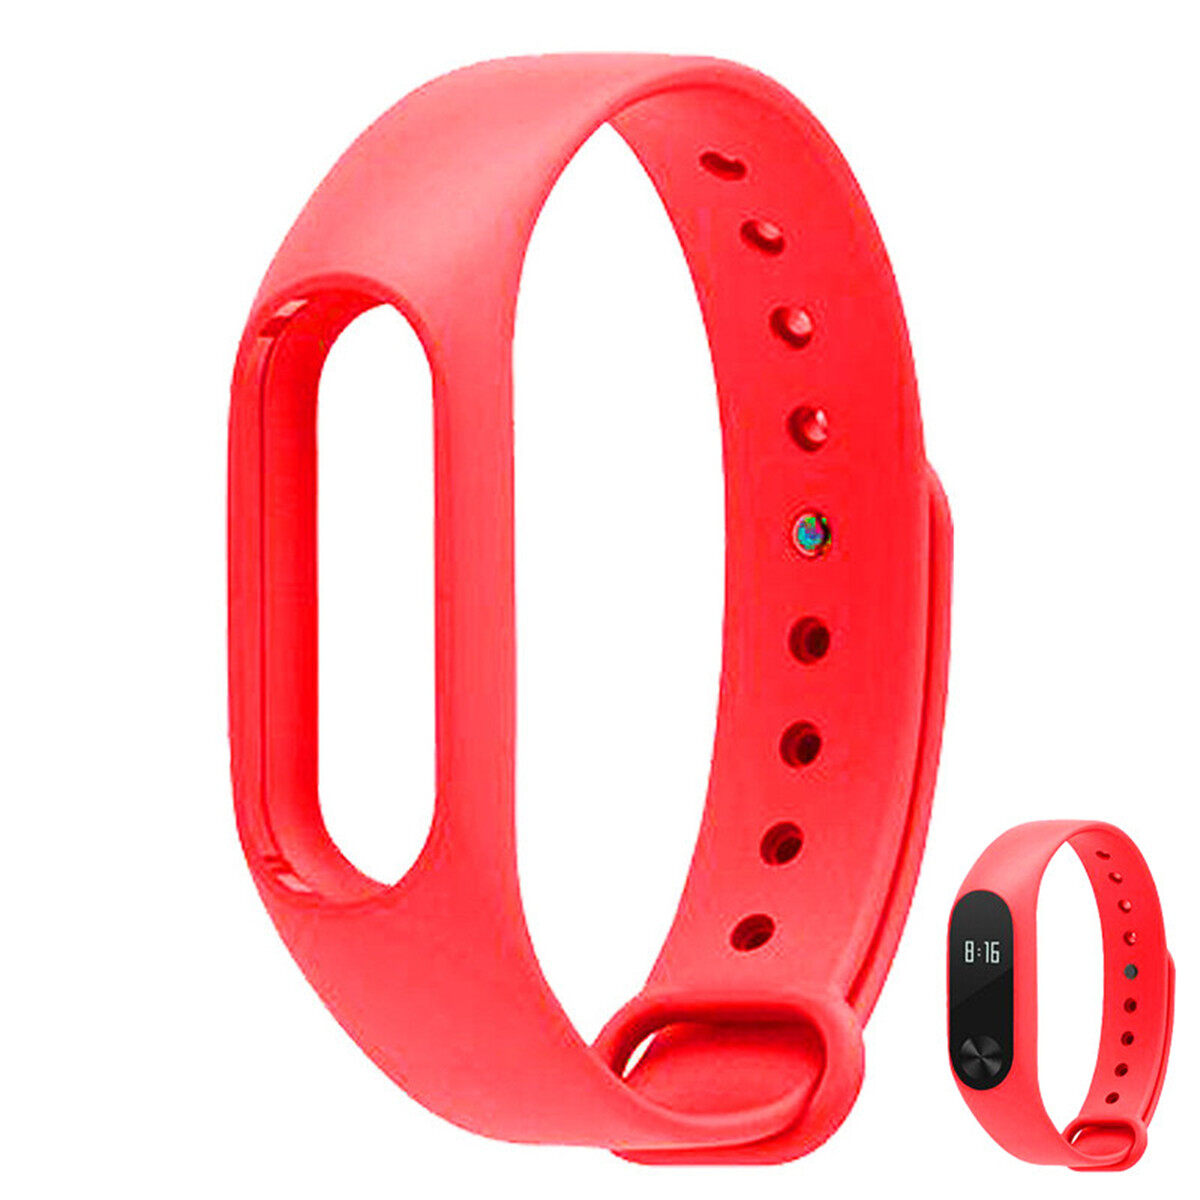 Replacement TPU Wrist Band for Xiaomi MI Band 2 - Red - intl